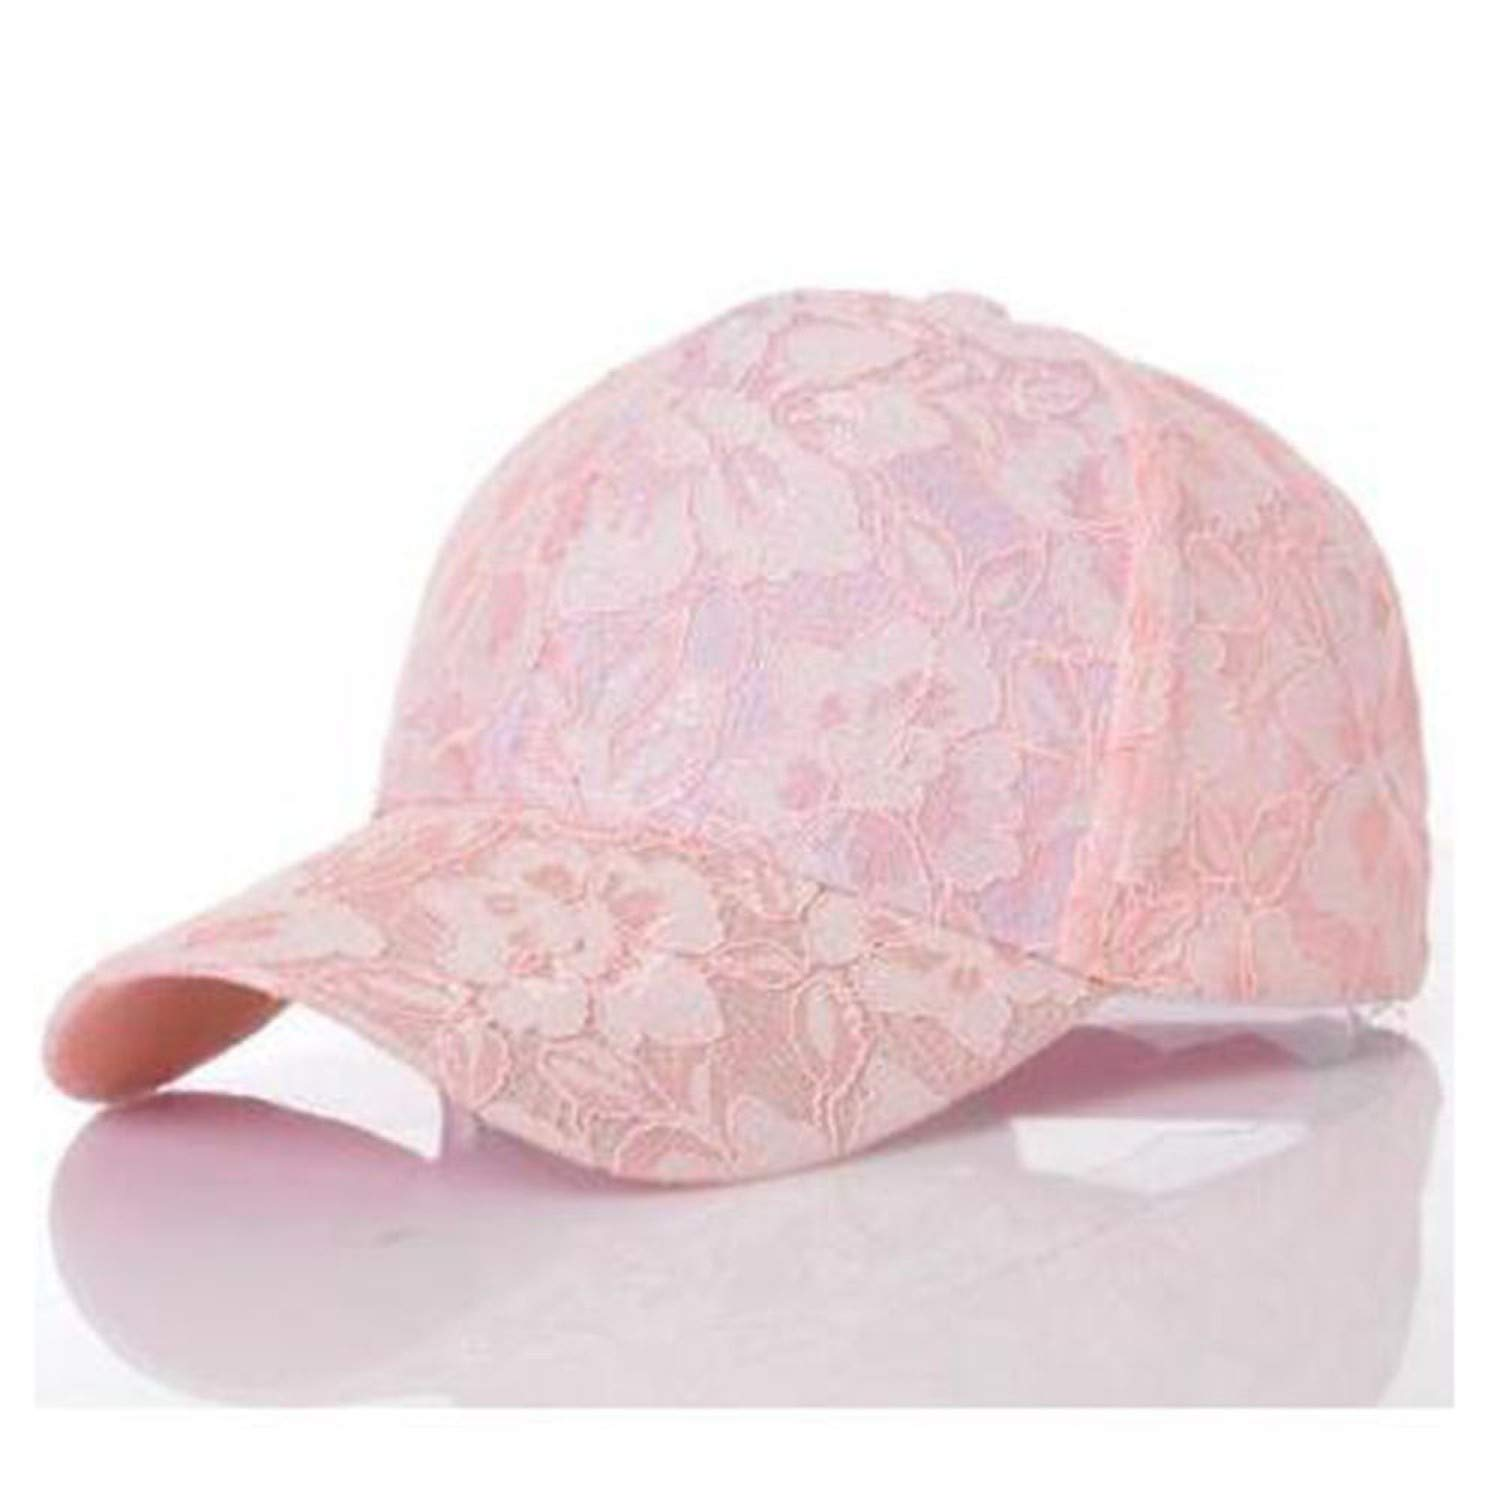 Amazon.com: Womens Baseball Caps Lace Sun Hats Breathable Mesh Hat Gorras Summer Cap Snapback Casquette Usual Occasion 1PC Fashion,Black: Clothing